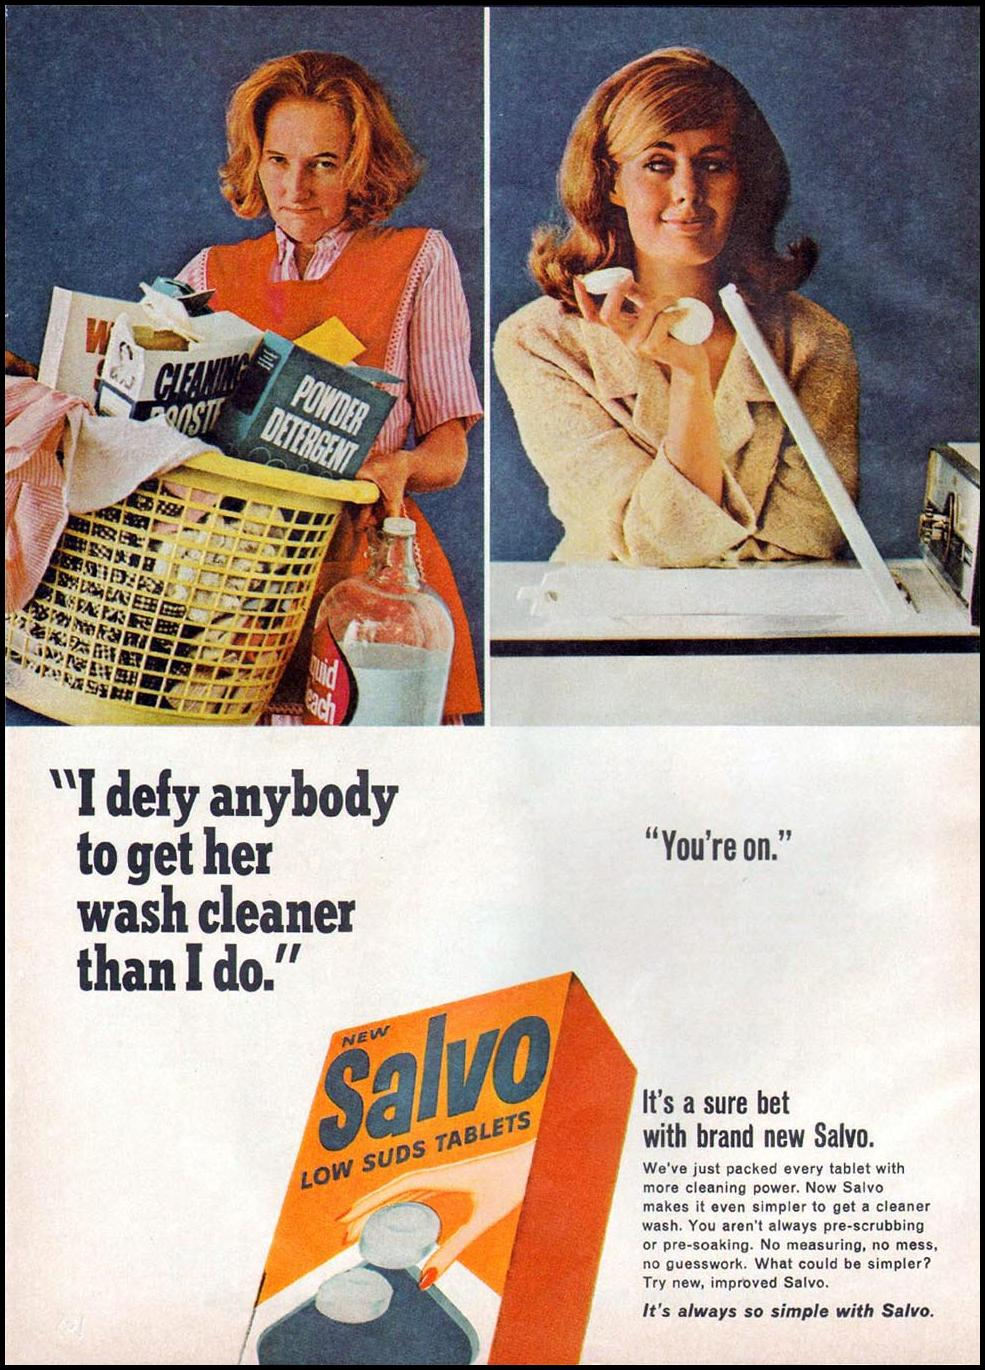 SALVO LOW SUDS DETERGENT TABLETS GOOD HOUSEKEEPING 10/01/1965 p. 166